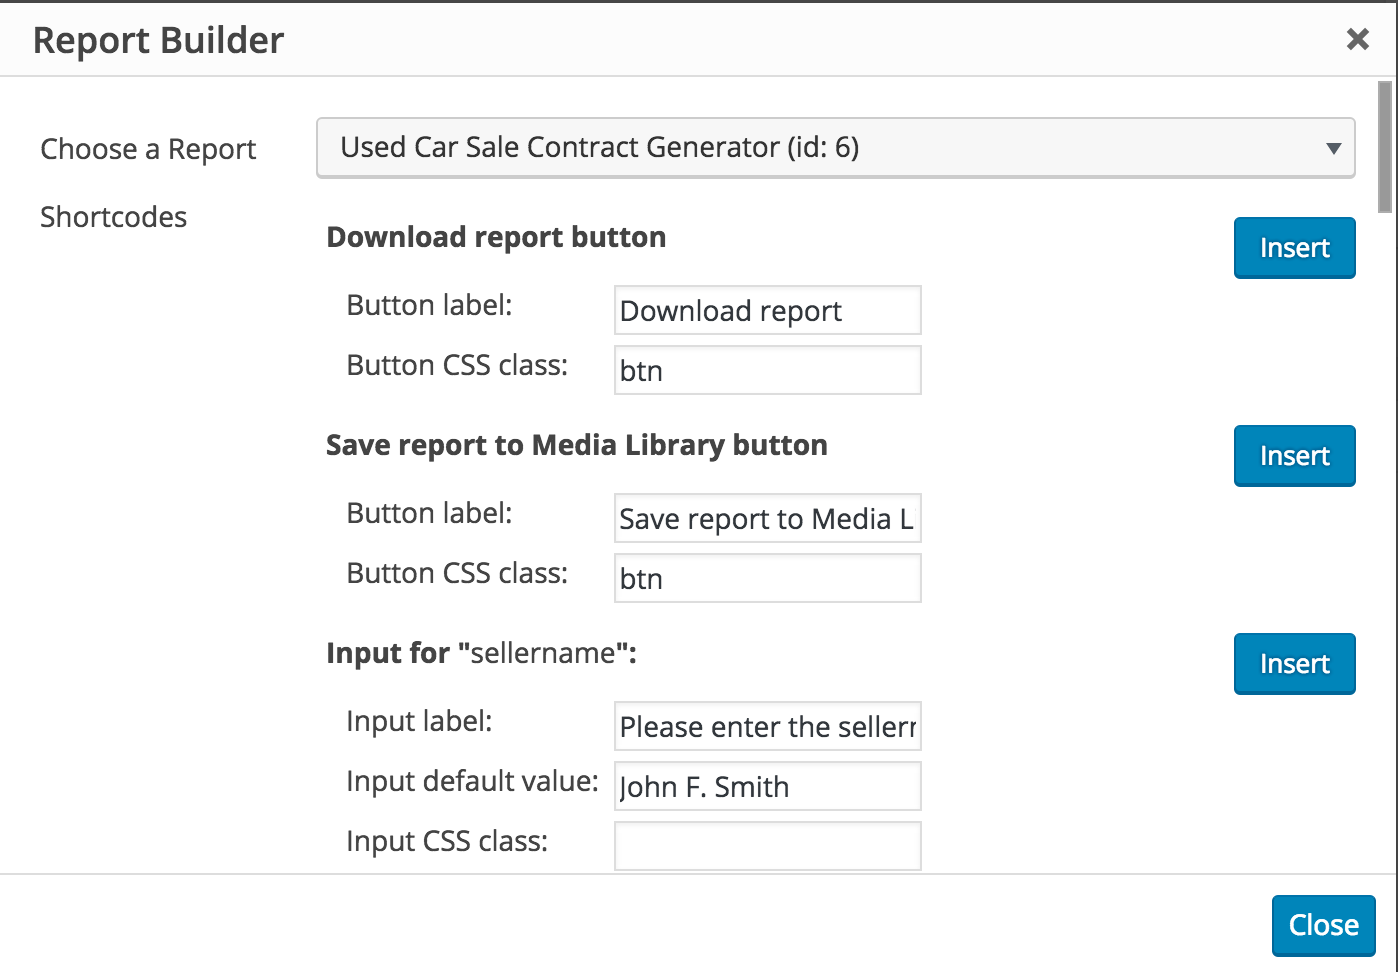 Insert Report Builder shortcodes for front-end inputs